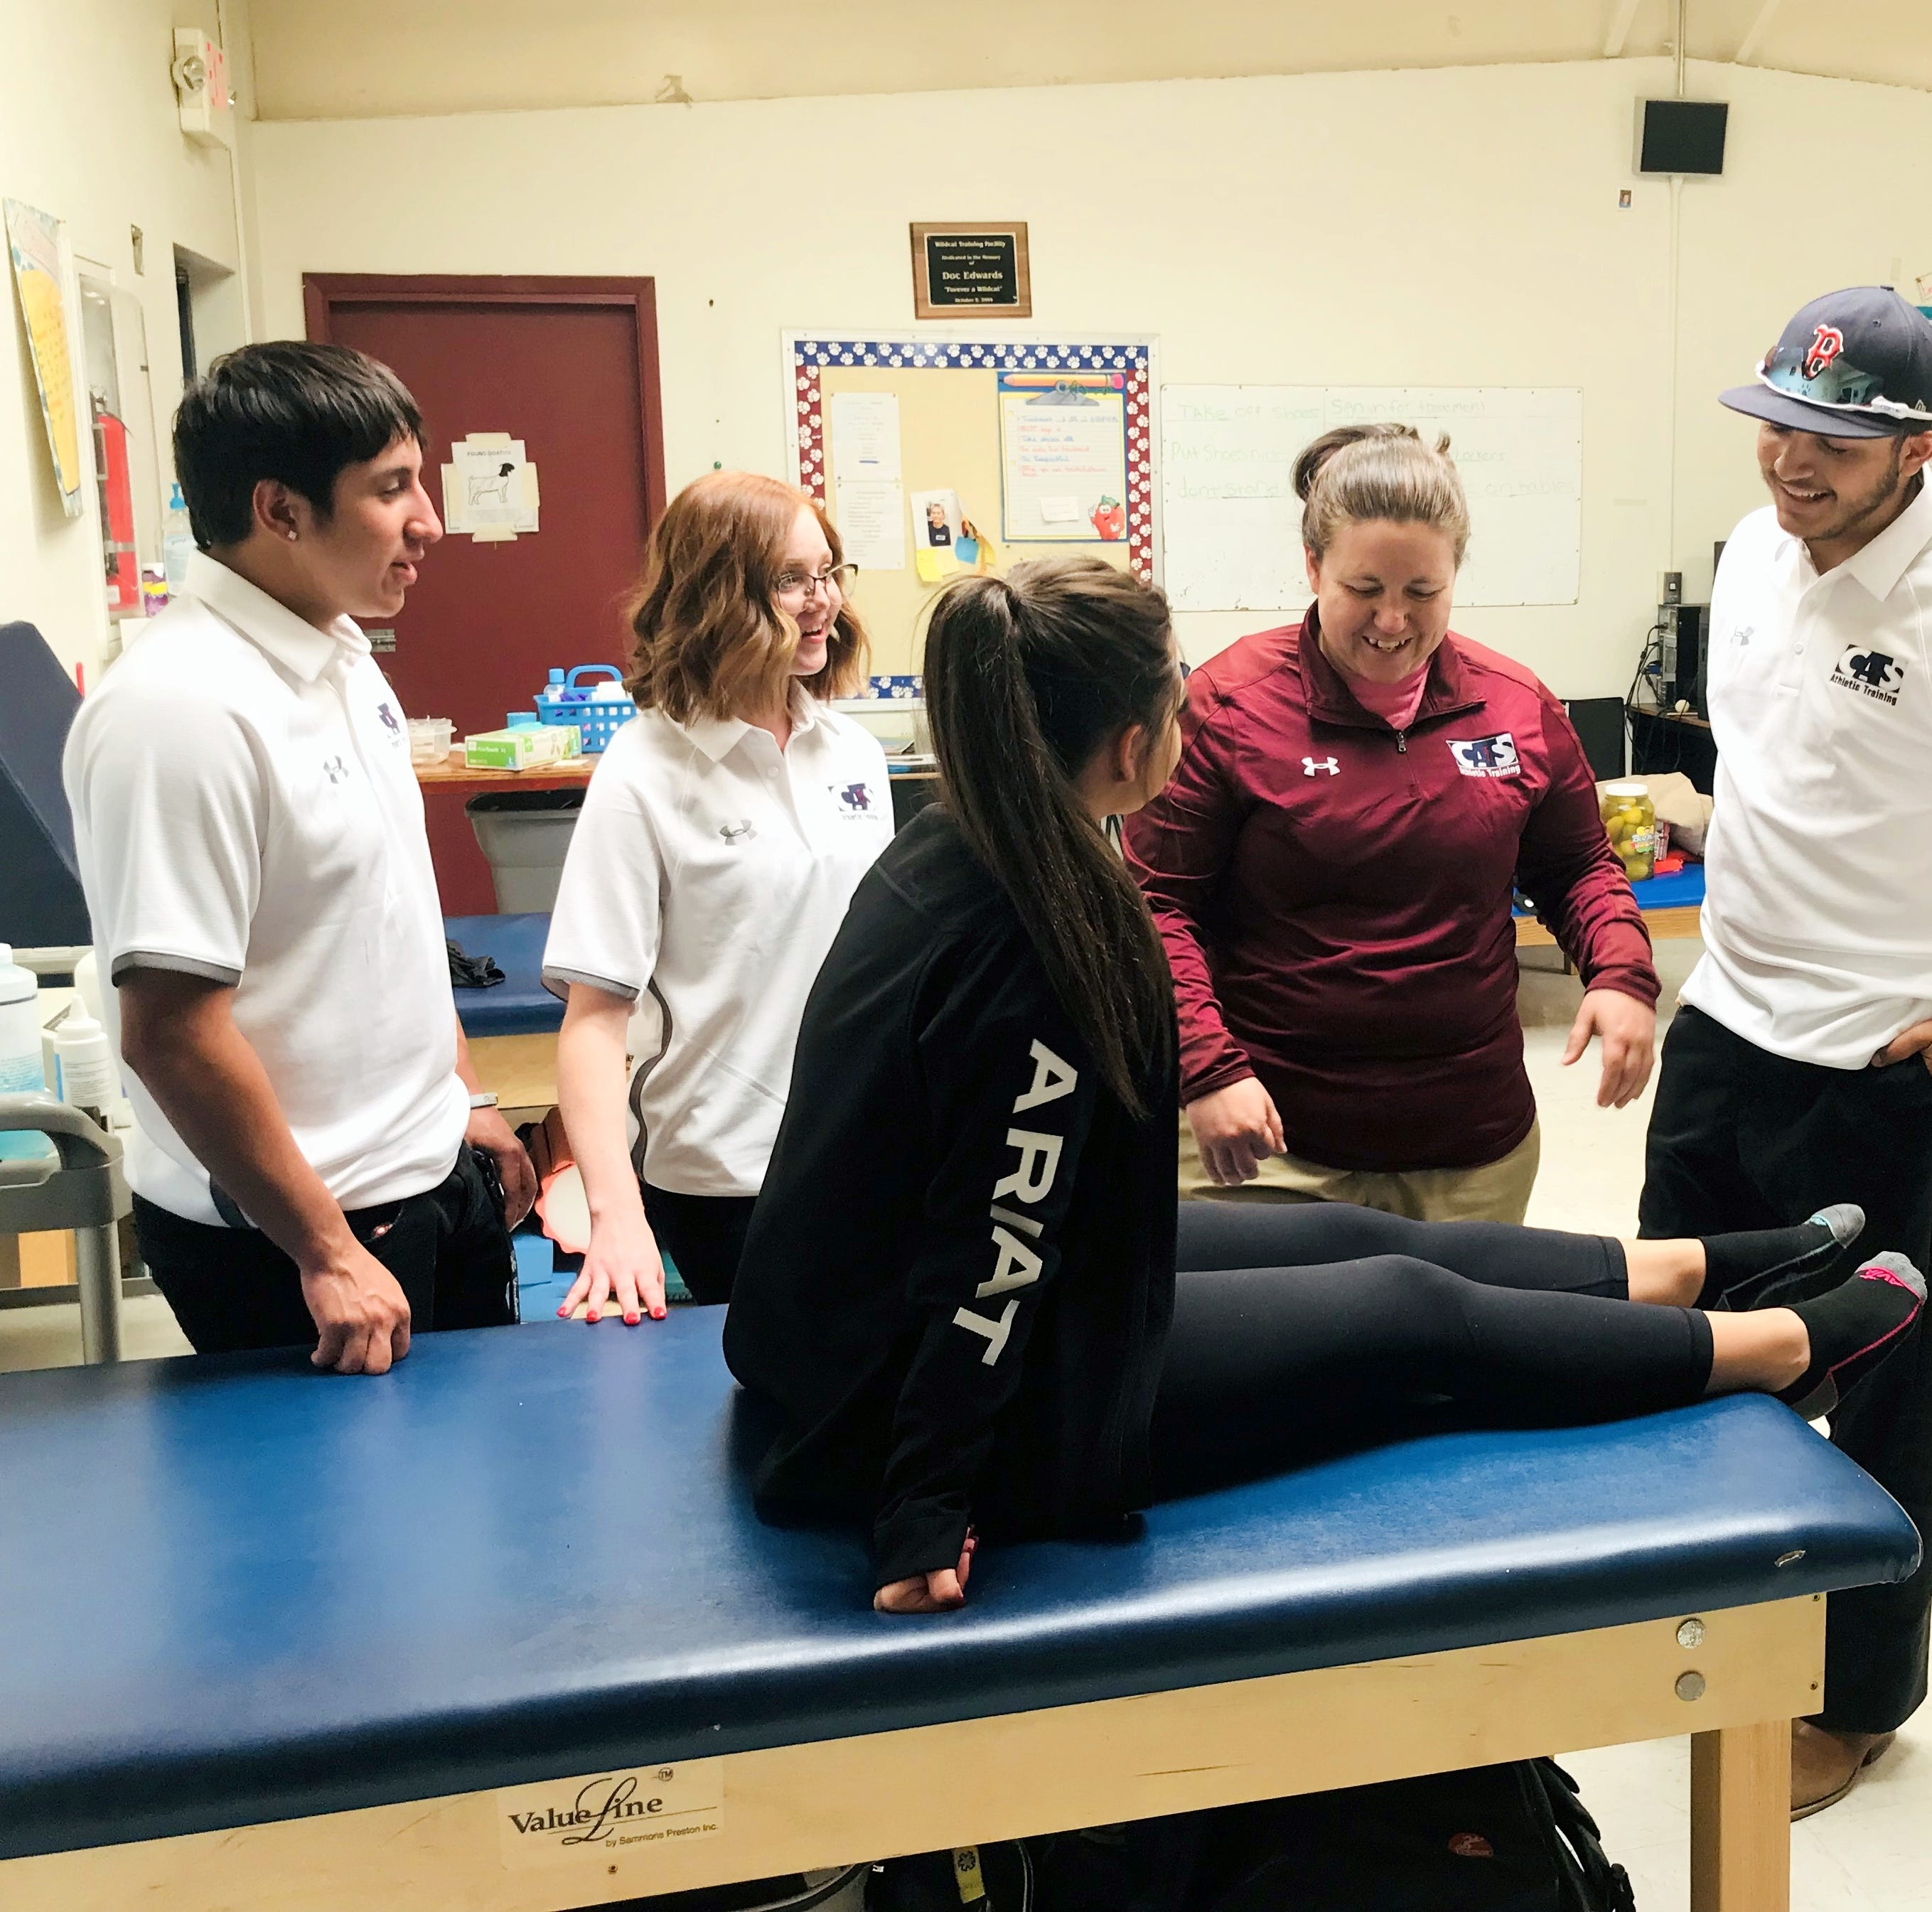 Deming High student athletic trainers prepare for state-level competition in Albuquerque